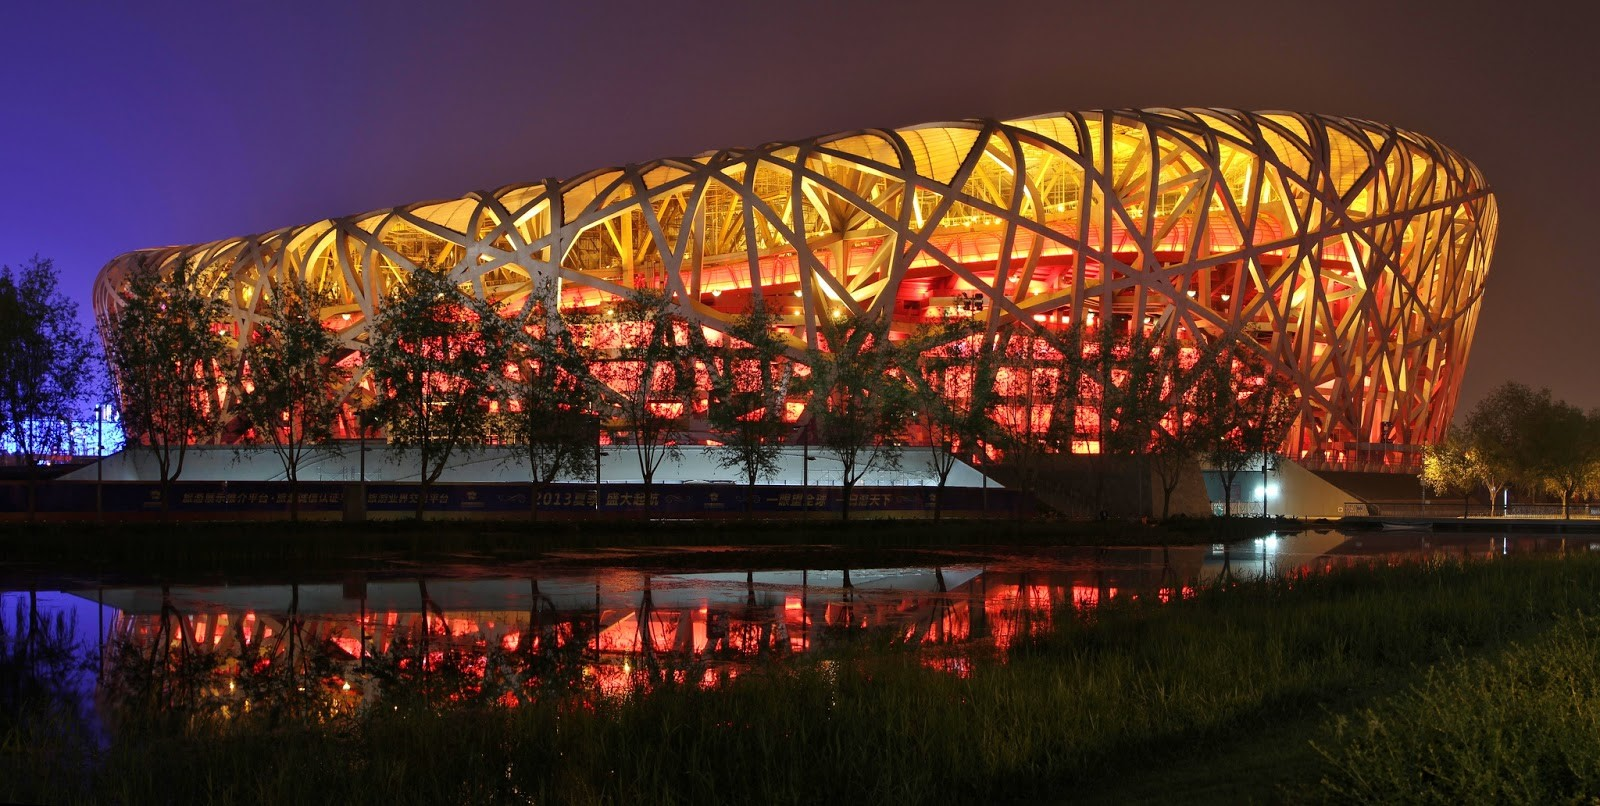 Biomimetic architecture as a step towards Sustainability - Sheet7